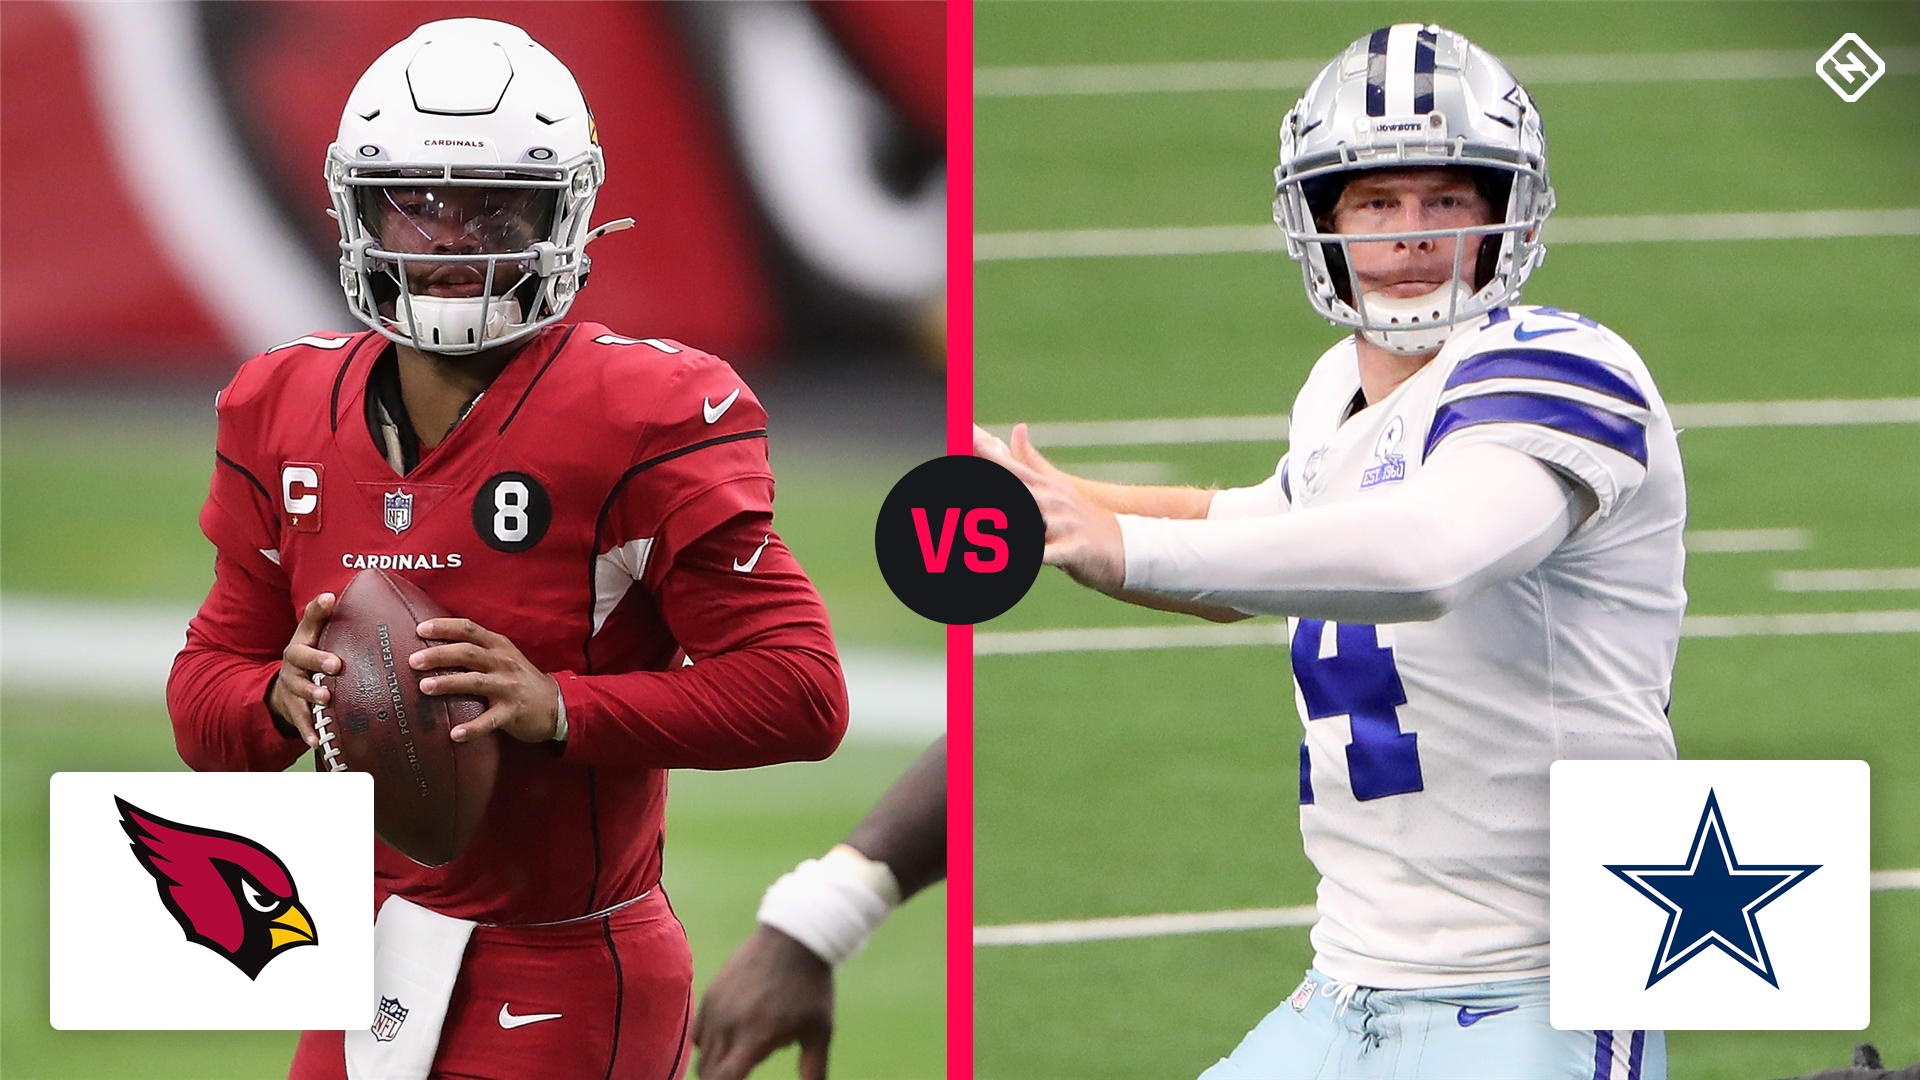 Cowboys vs. Cardinals odds, prediction, betting trends for NFL's 'Monday Night Football' game